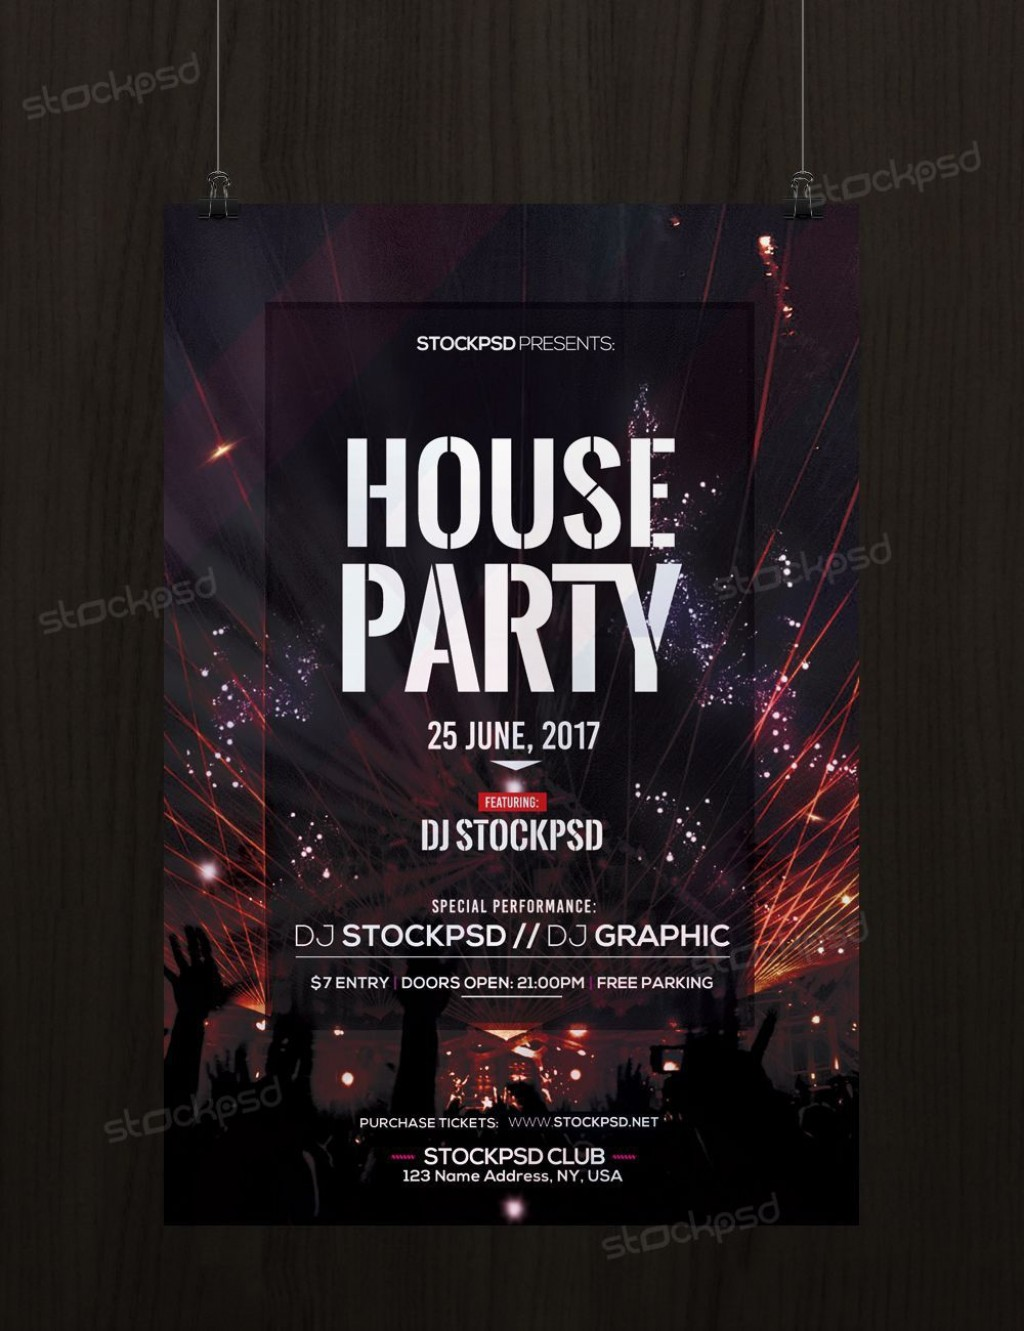 000 Magnificent Party Flyer Template Free Photoshop Idea  Birthday Psd Masquerade -Large